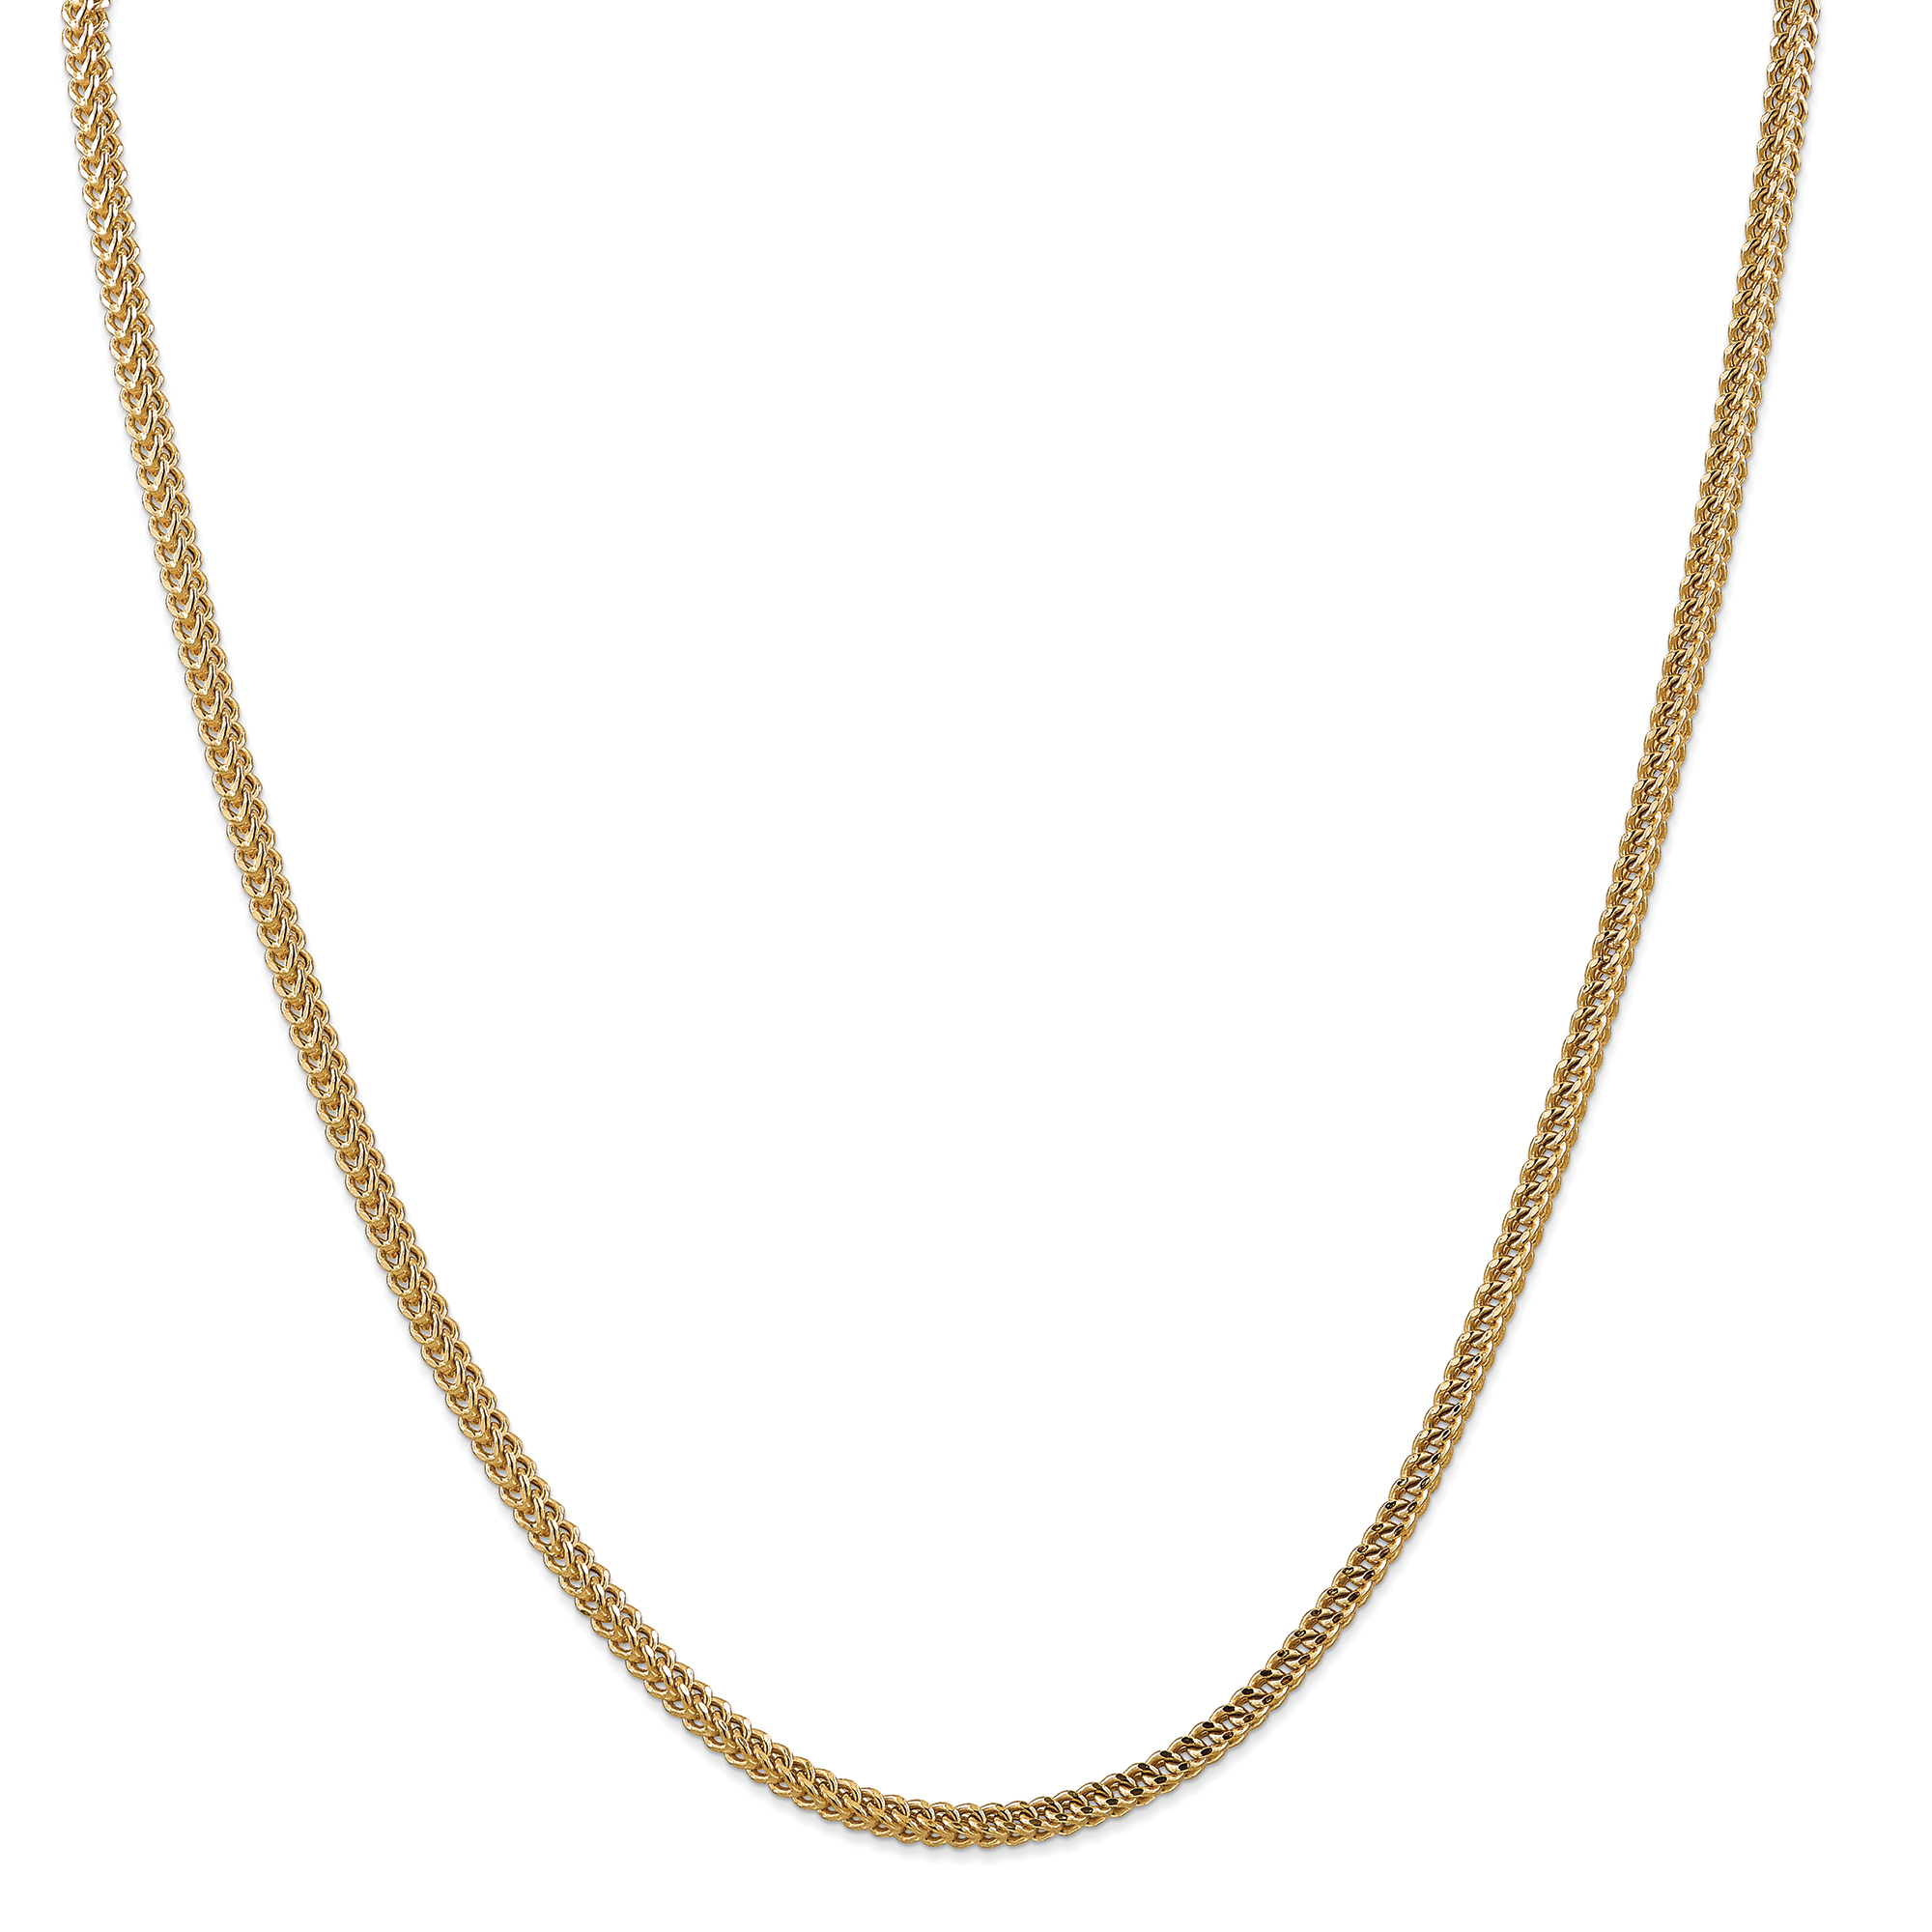 14K Yellow Gold 3mm Hollow Franco Chain 22 Inch - image 5 de 5